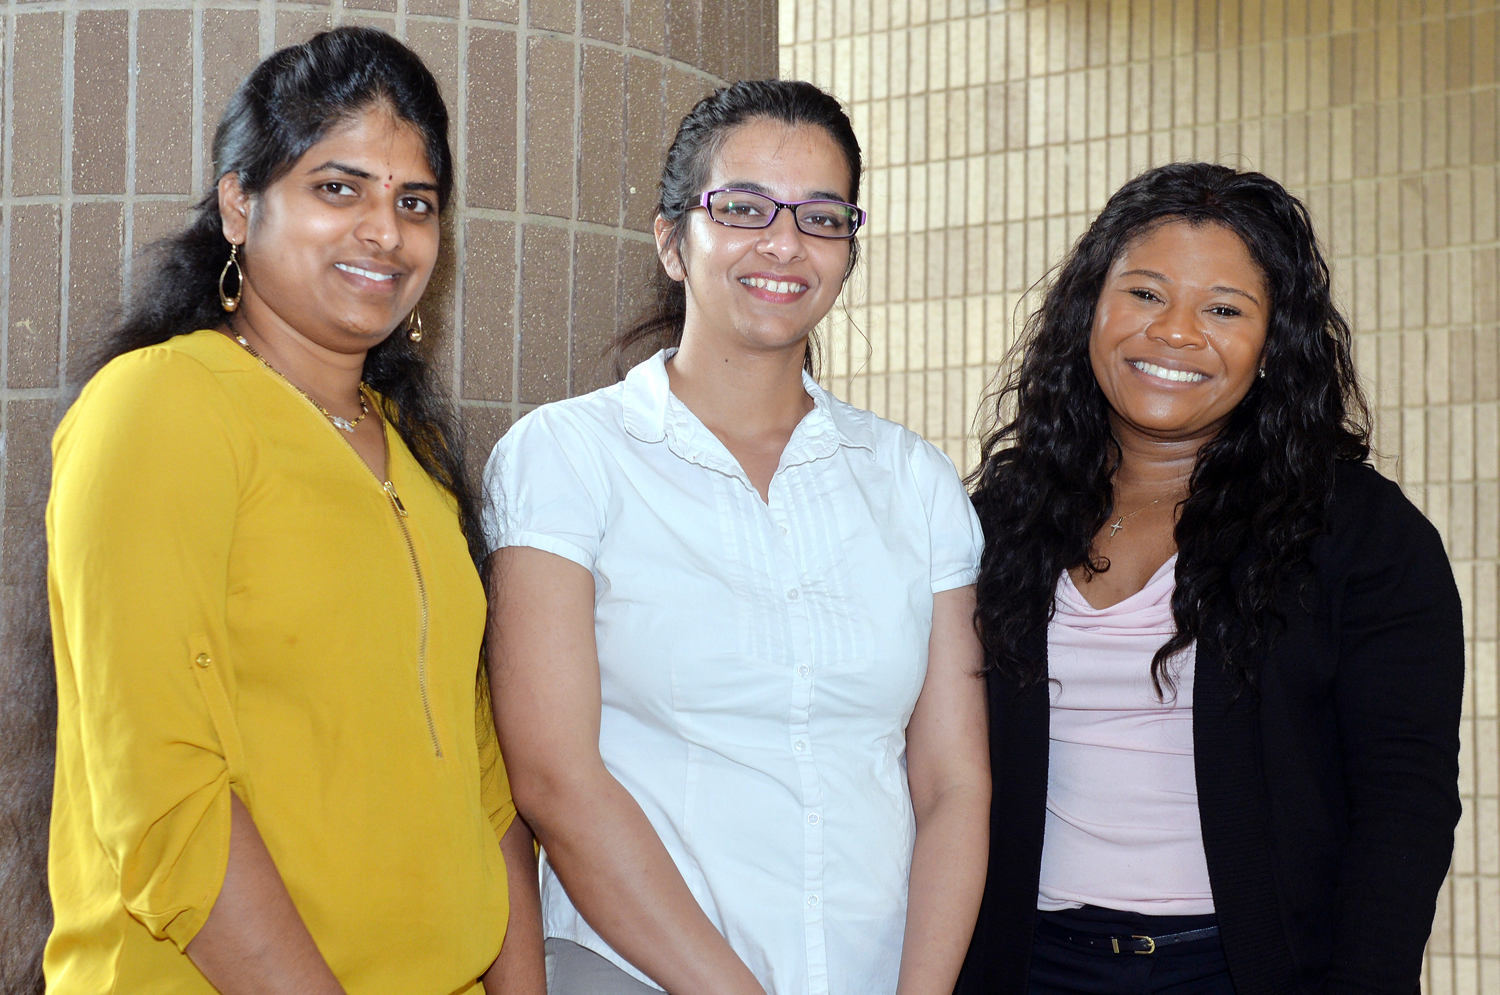 (from left to right) Prathyusha Bagam, Gagandeep Kaur, and Rakeysha Pinkston